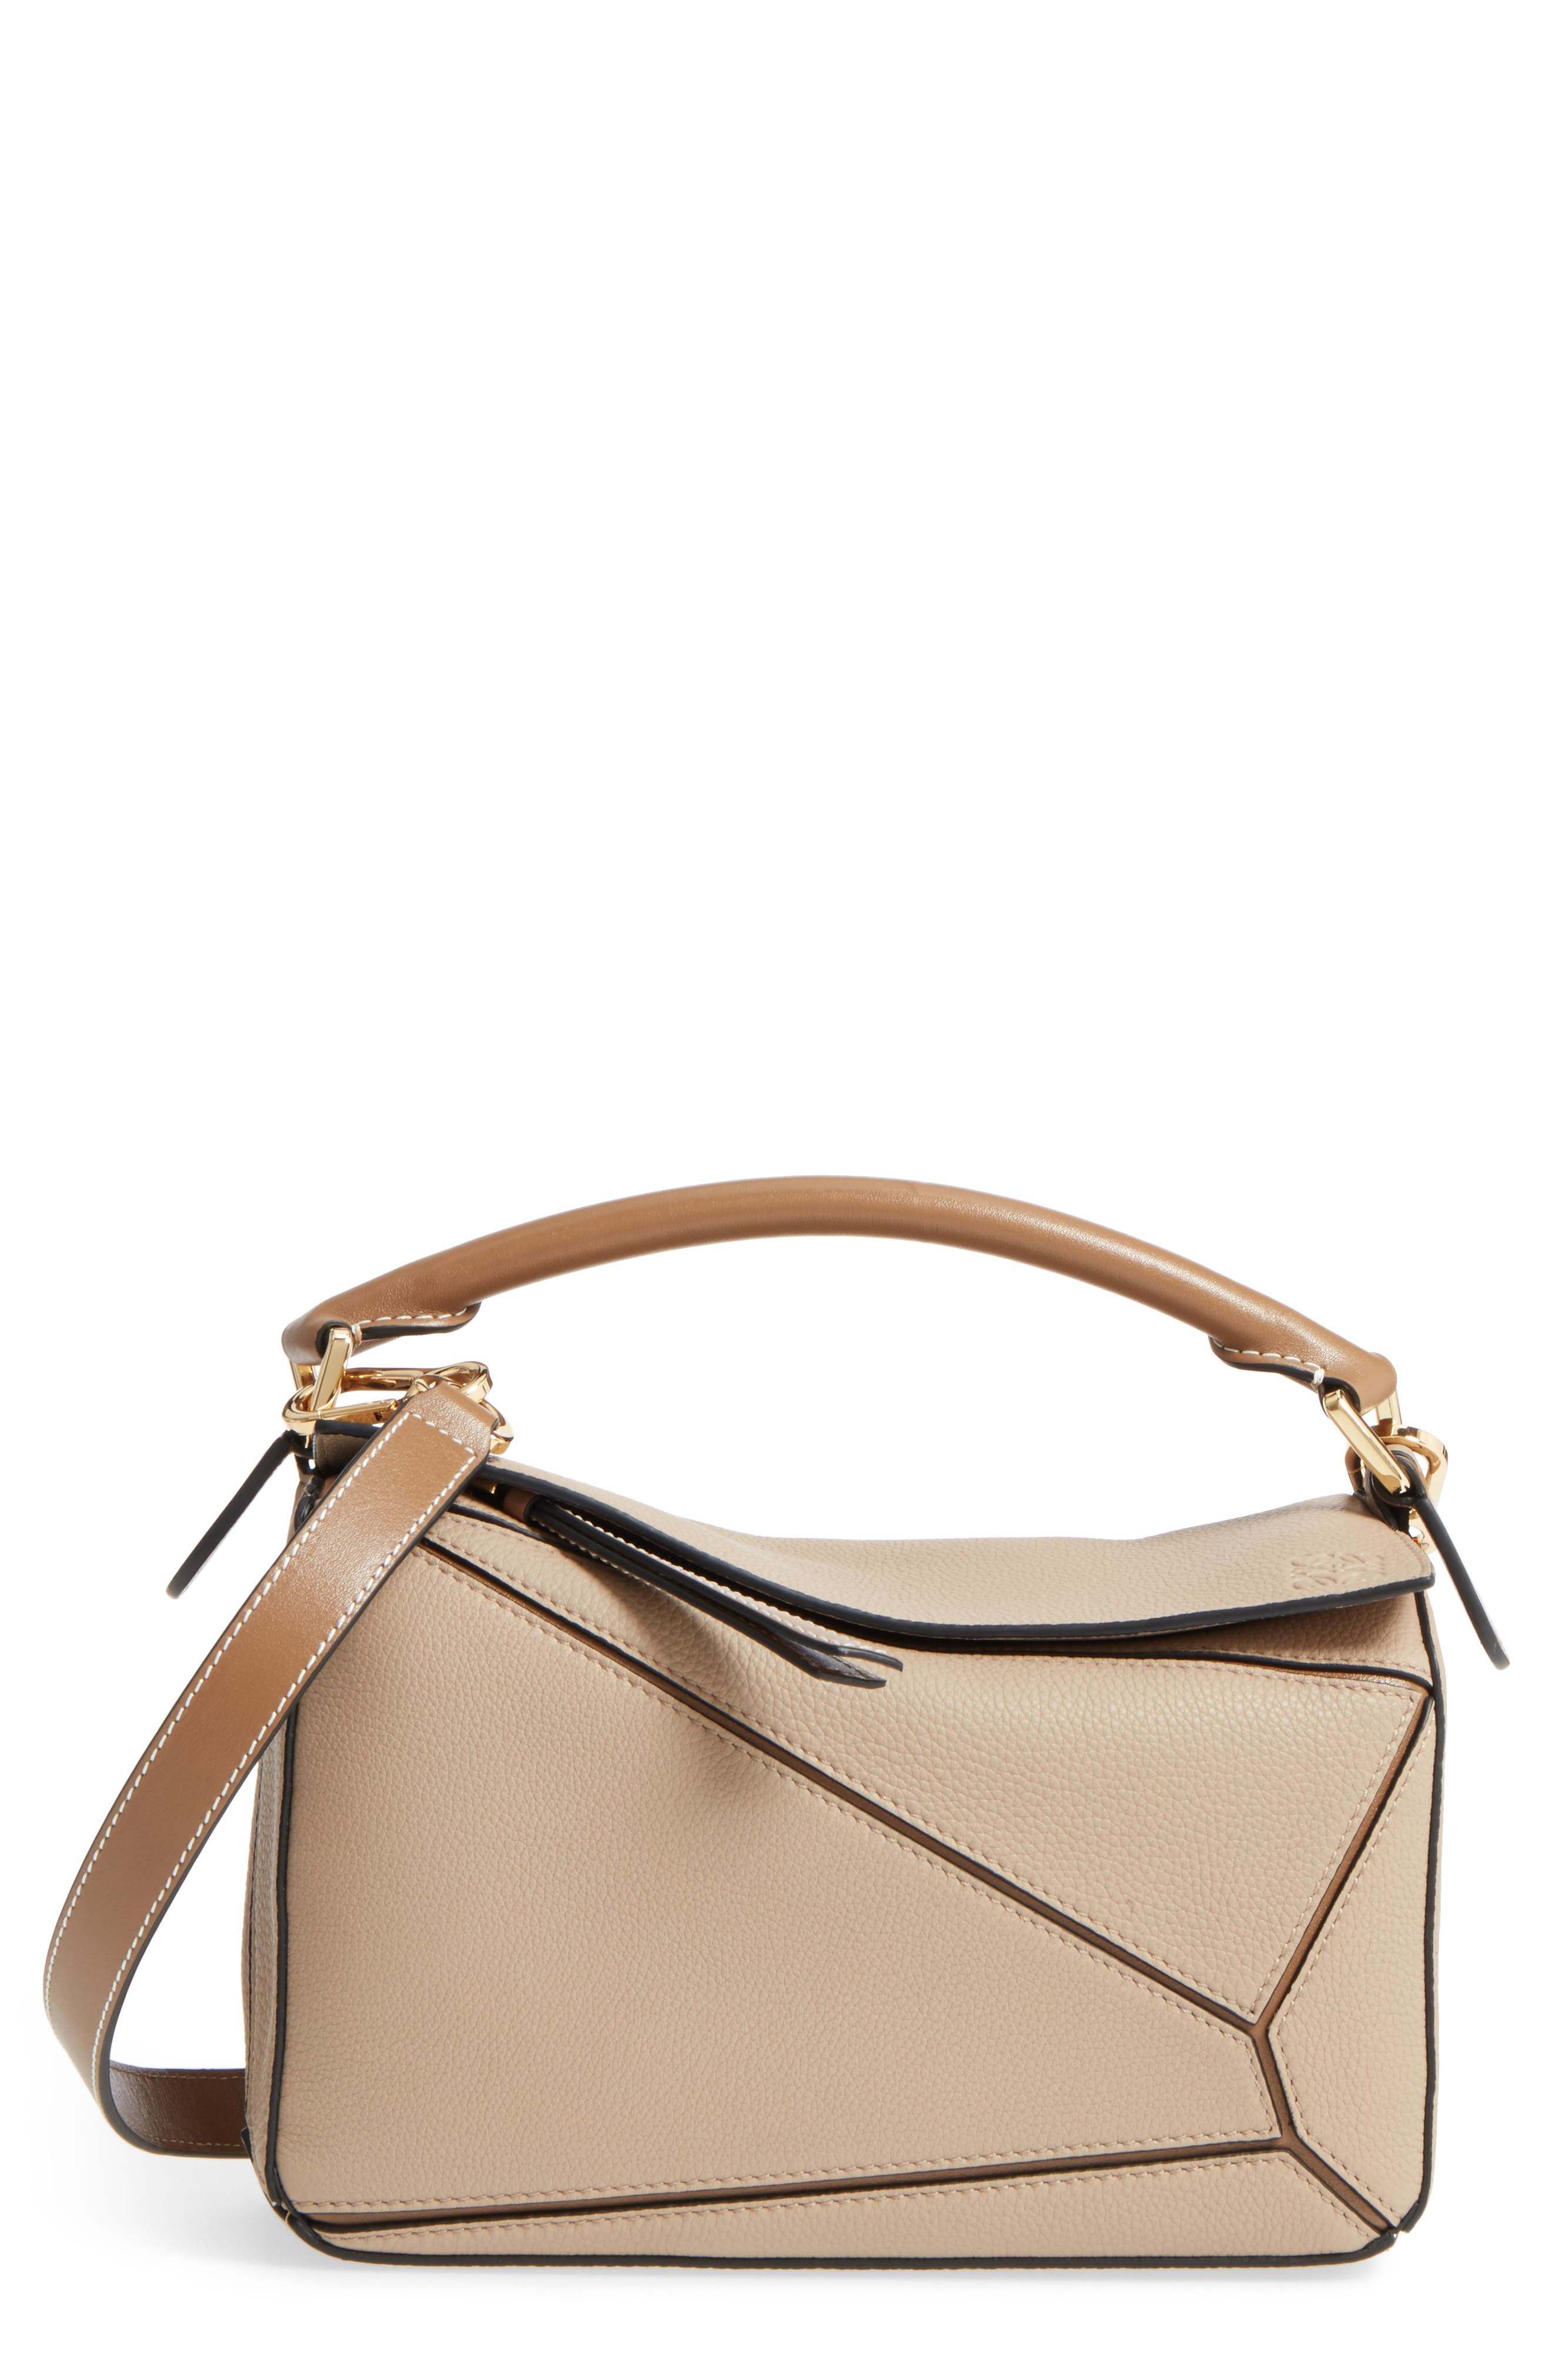 Small Puzzle Leather Bag - Beige in Sand/ Mink